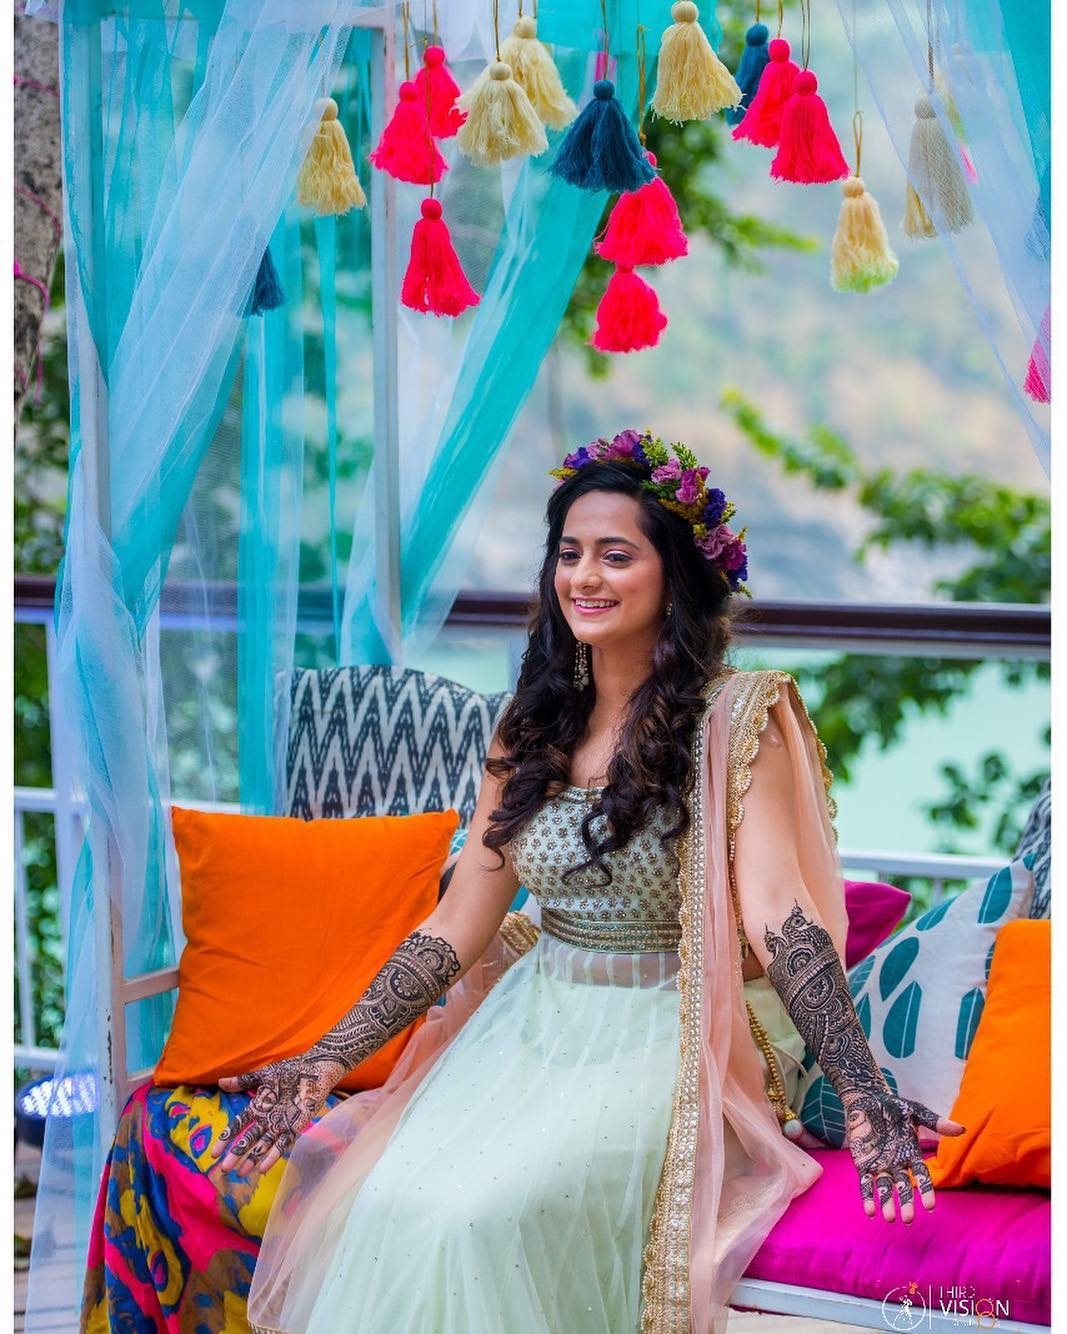 BRIDE SMILING ON HER MEHENDI FUNCTION | PASTEL MINT AND PEACH LEHENGA FOR MEHENDI | FLORAL TIARA FOR BRIDES | TASSELS FOR MEHENDI DECOR | LIGHT BLUE SHEER CURTAINS FOR WEDDING DECOR \ THRID VISION STUDIO | FUNCTION MANIA